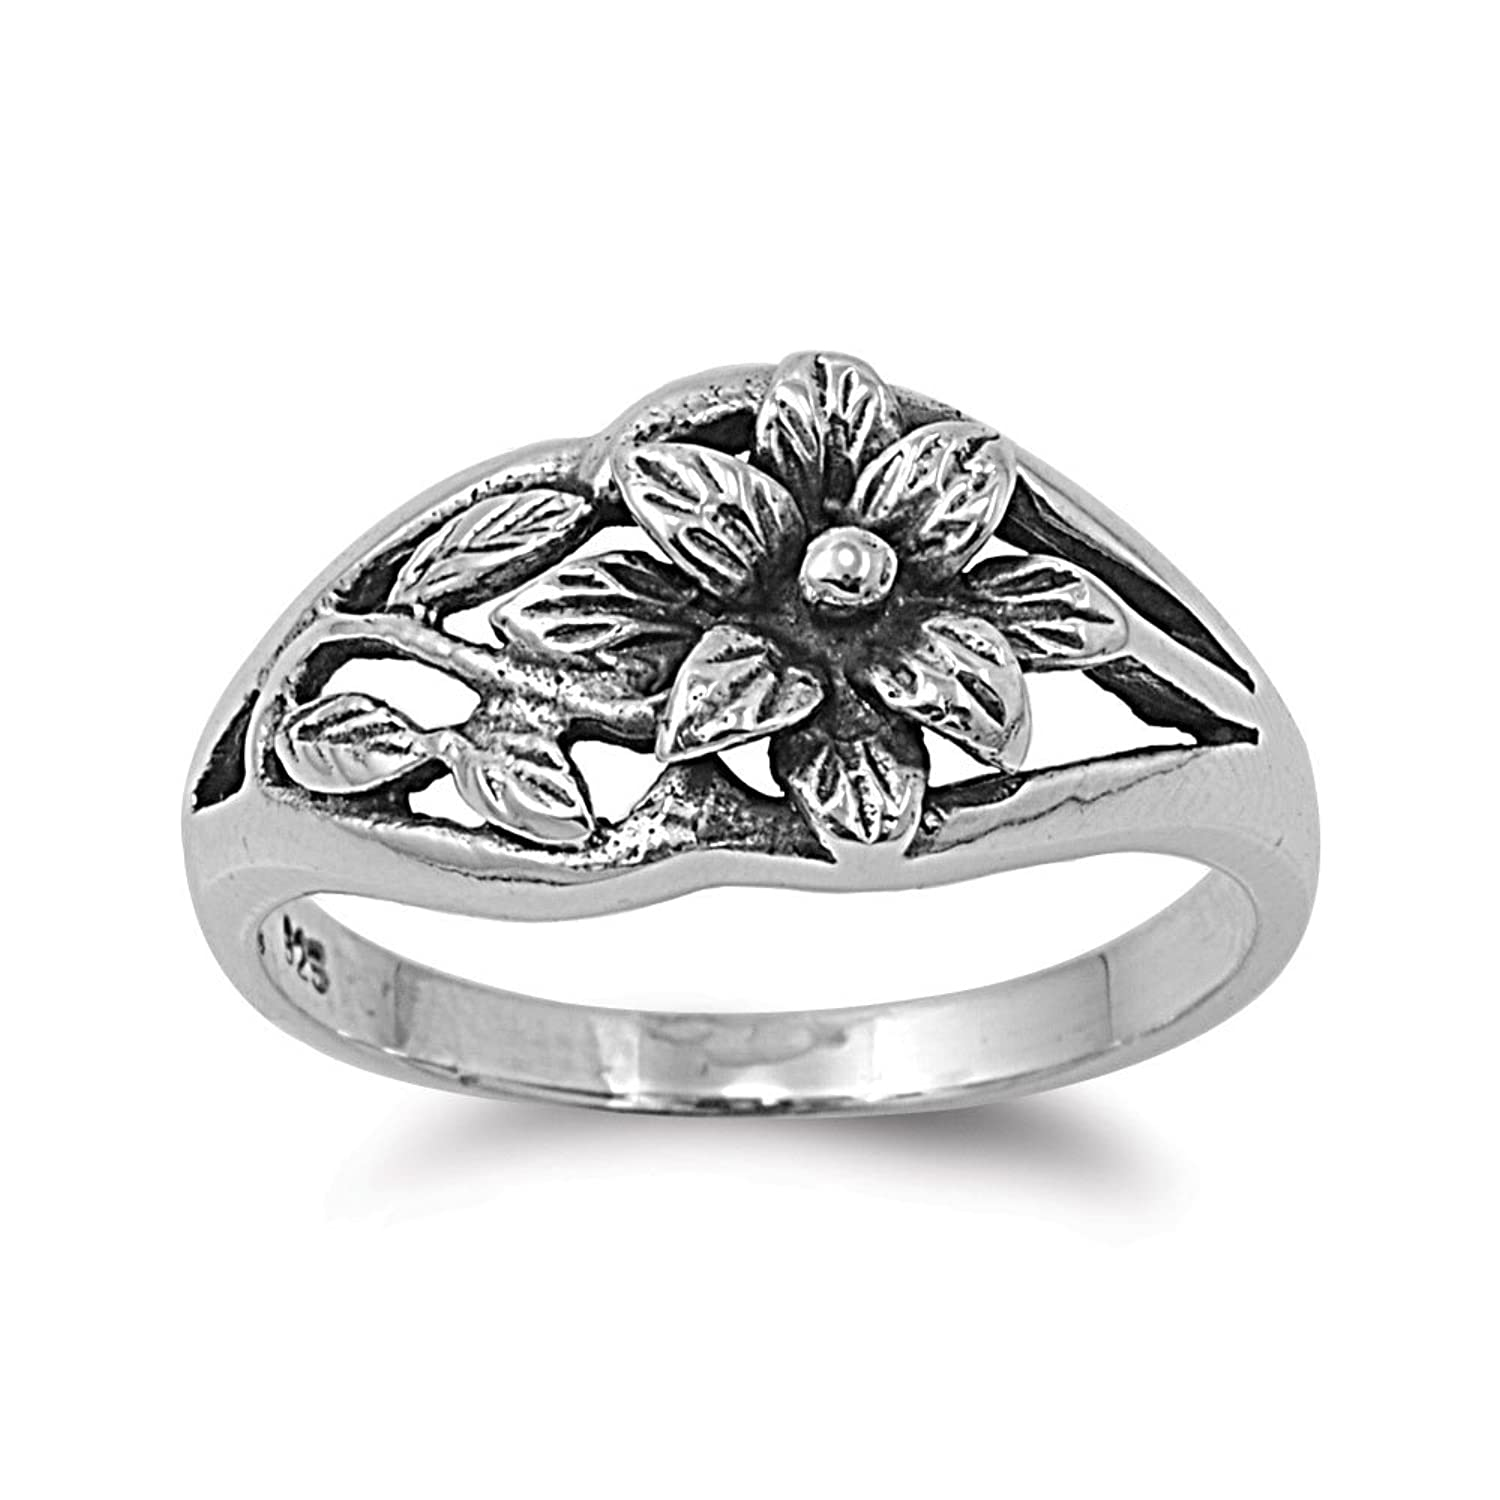 article buy rings an online for crimson rose picture ring a customer shopping small experience unique how engagement topics flower of to lotus my diamond